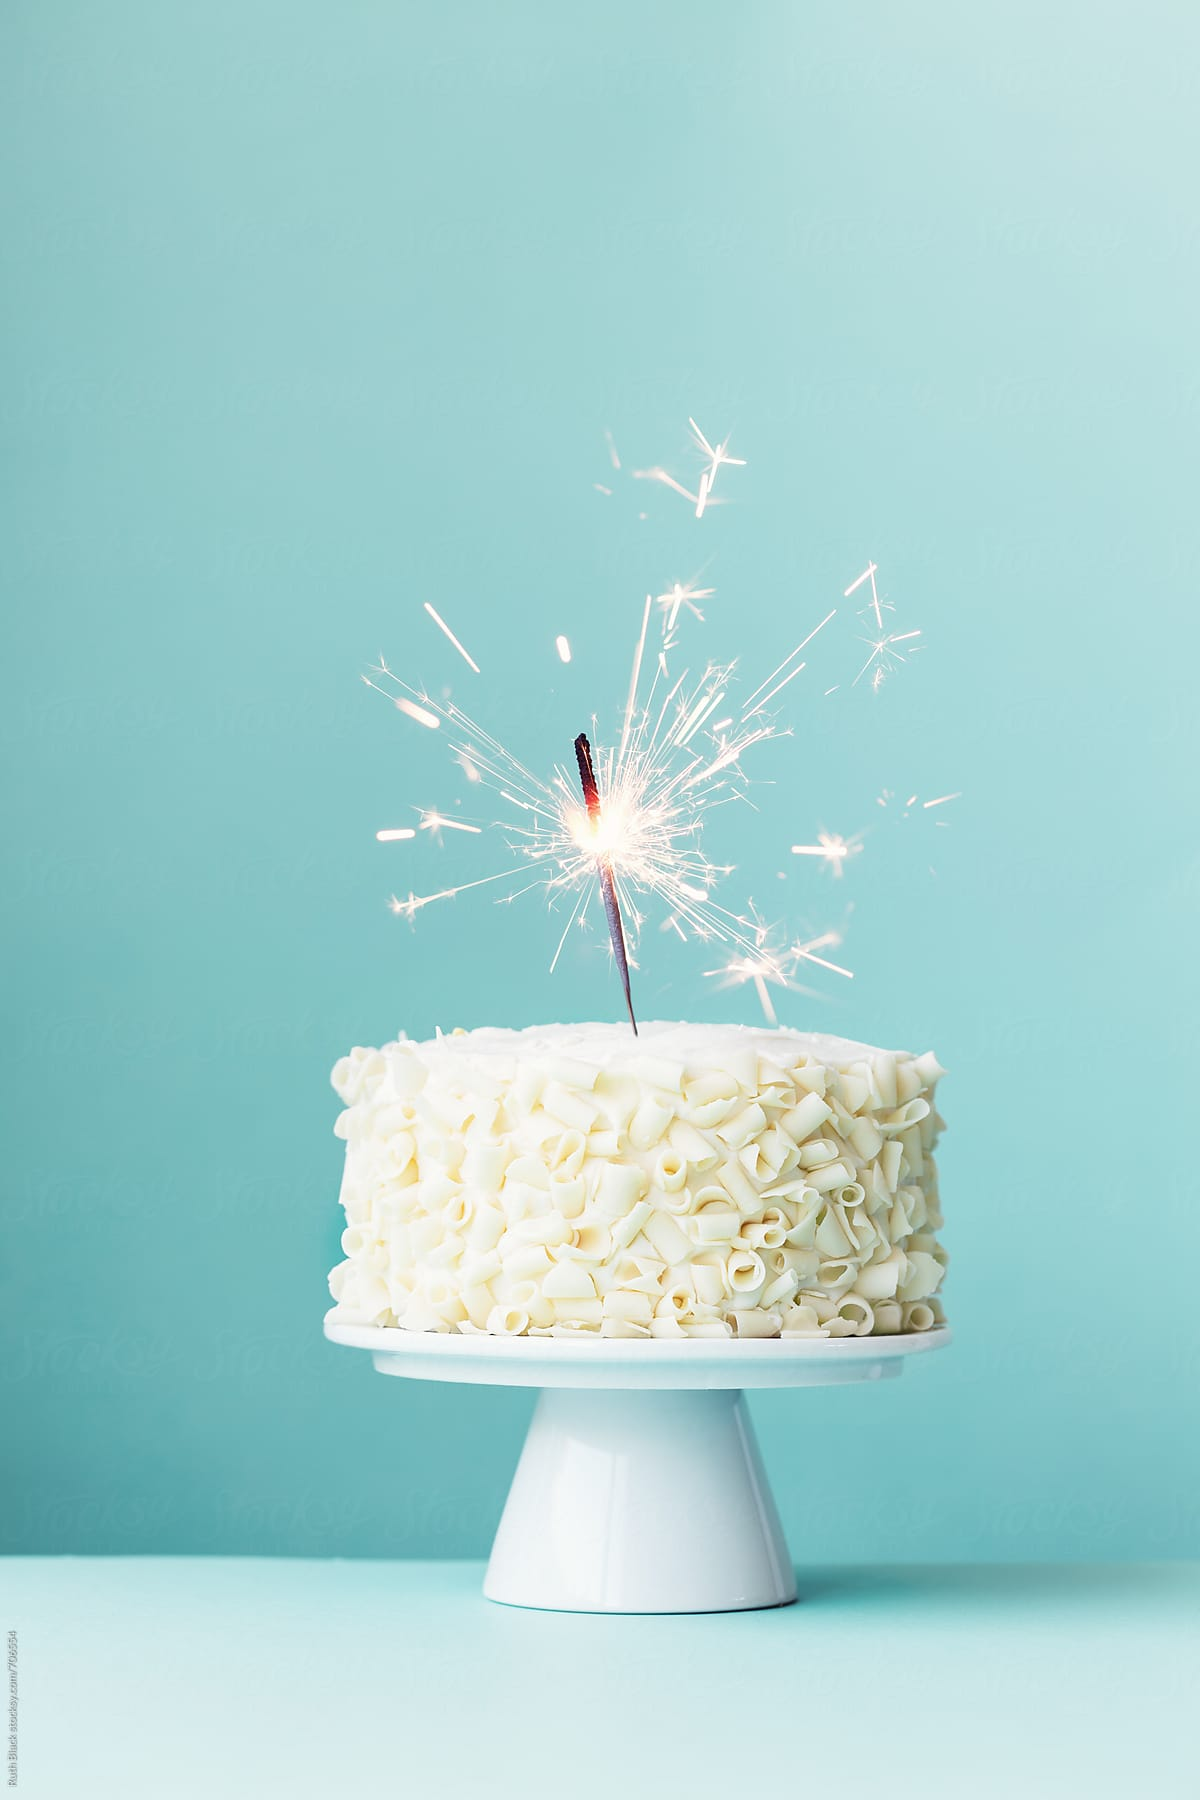 Astounding Cake With White Chocolate Curls And Sparkler By Ruth Black Cake Funny Birthday Cards Online Fluifree Goldxyz